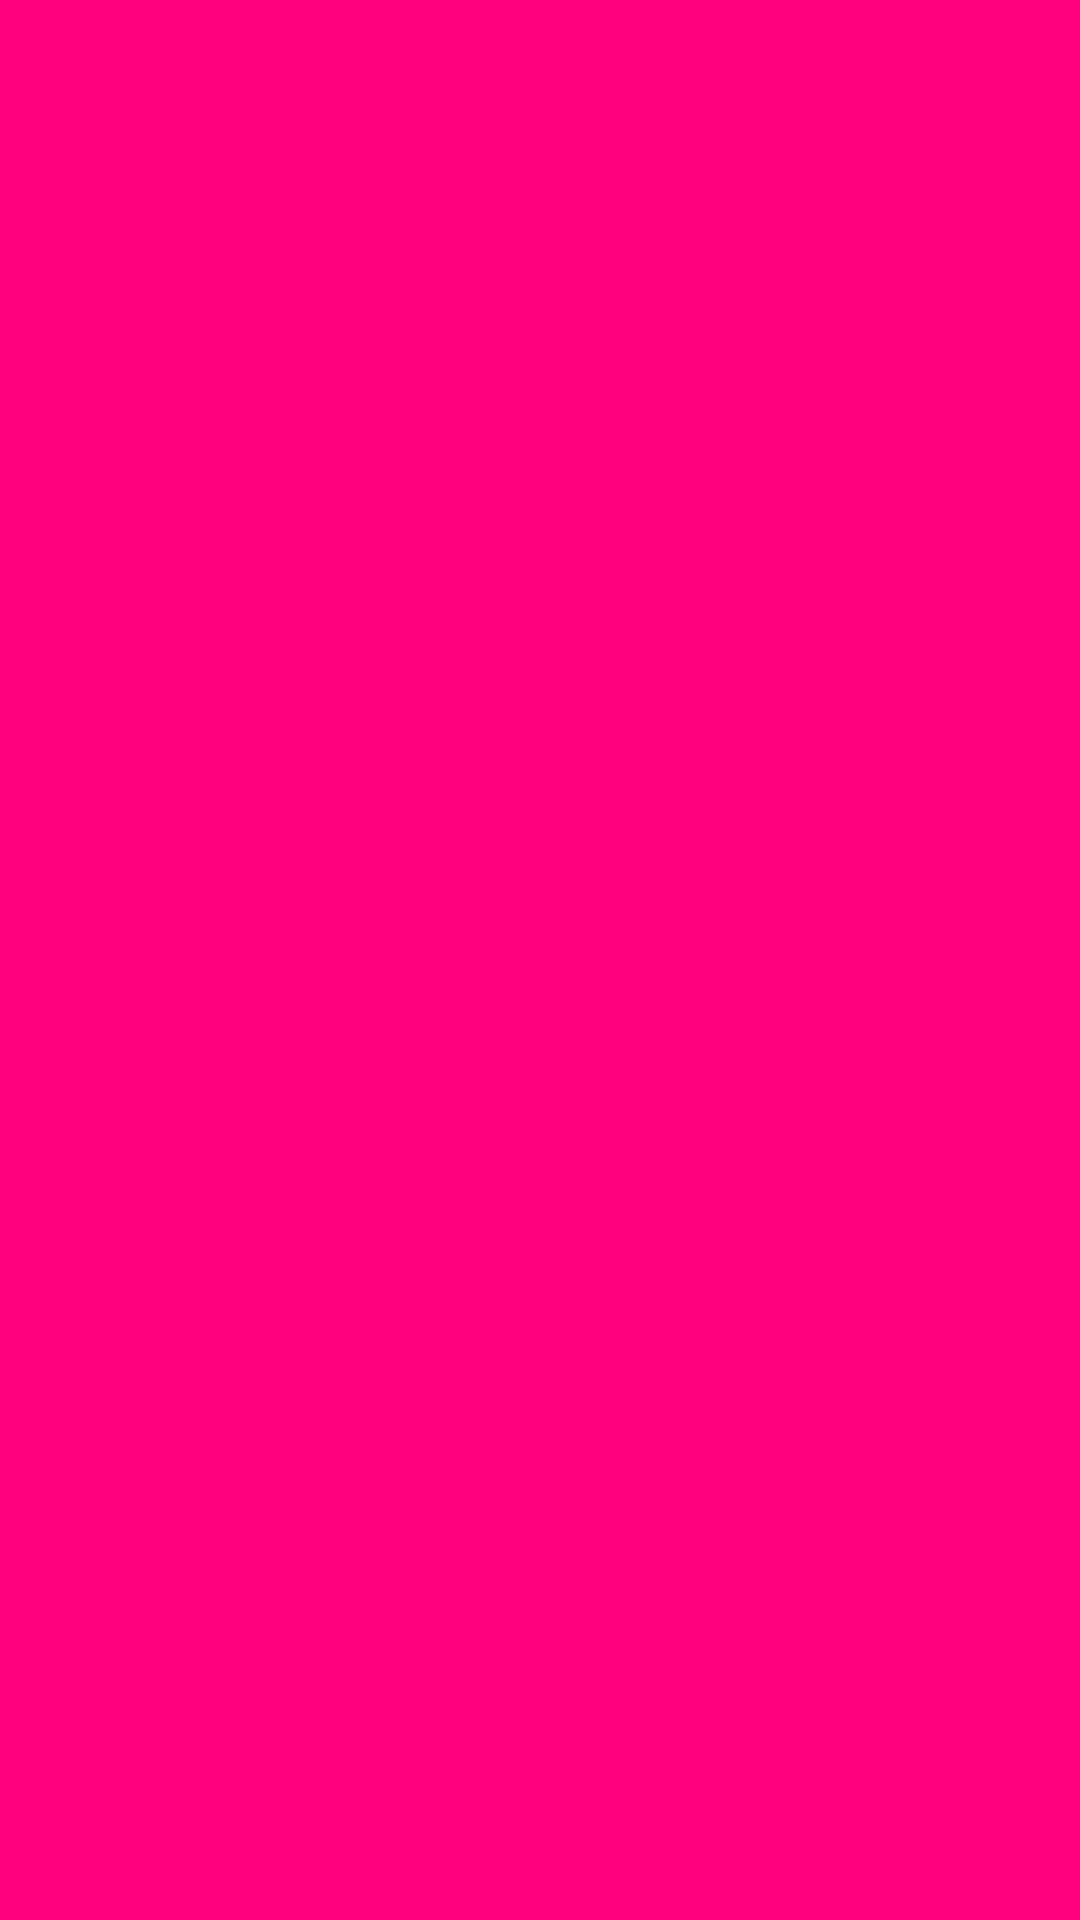 1080x1920 Bright Pink Solid Color Background